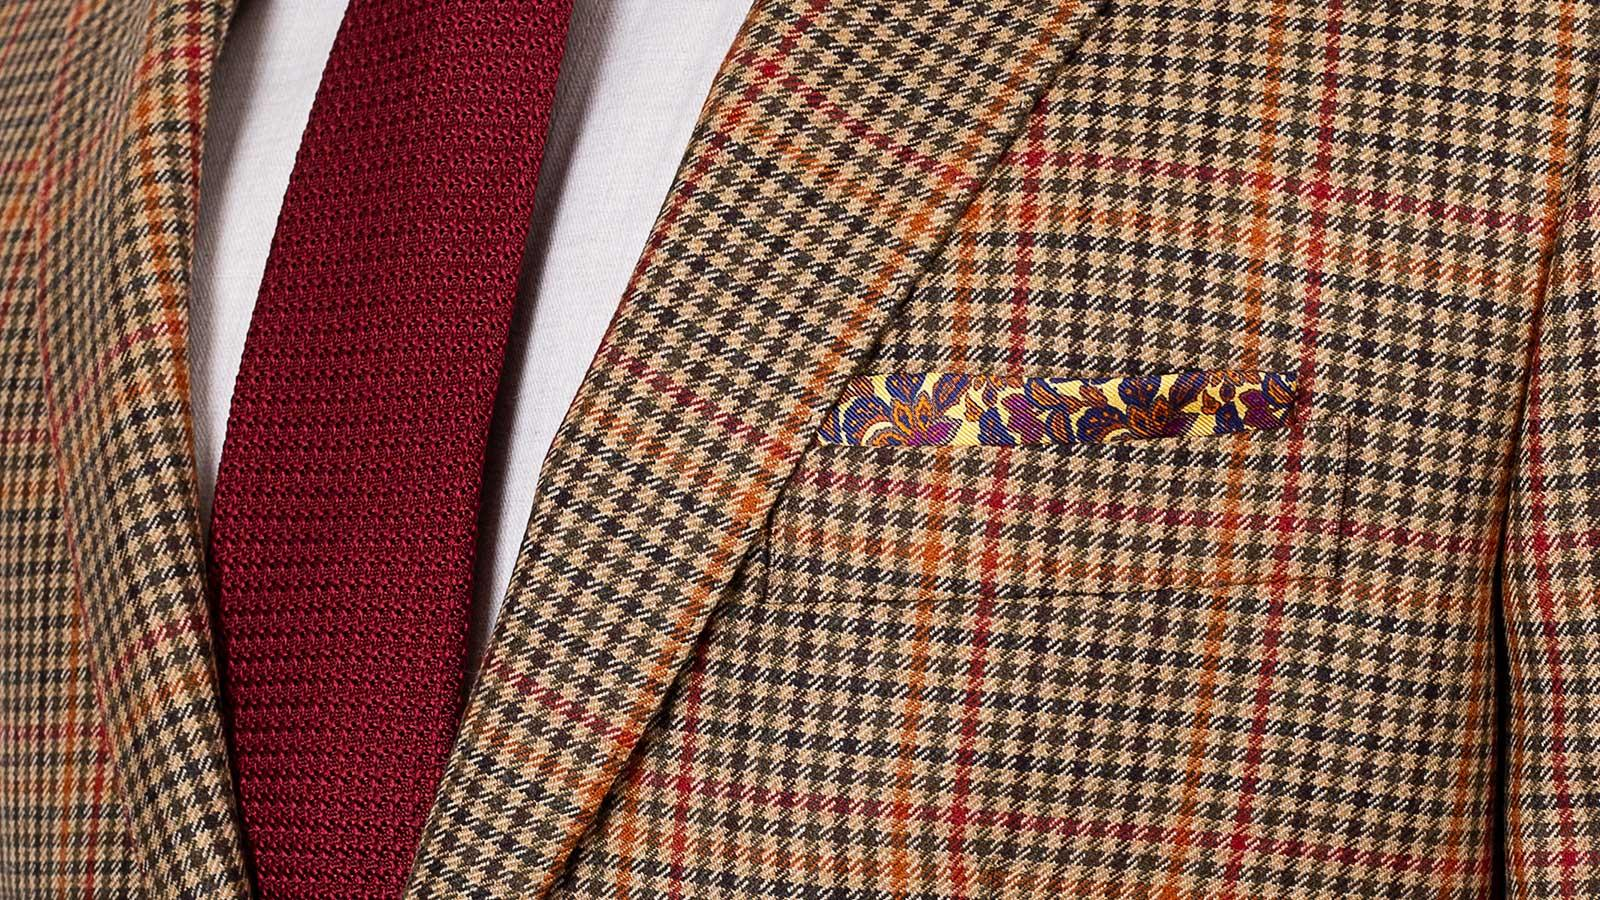 Brown Check Wool & Cashmere Suit - slider image 1